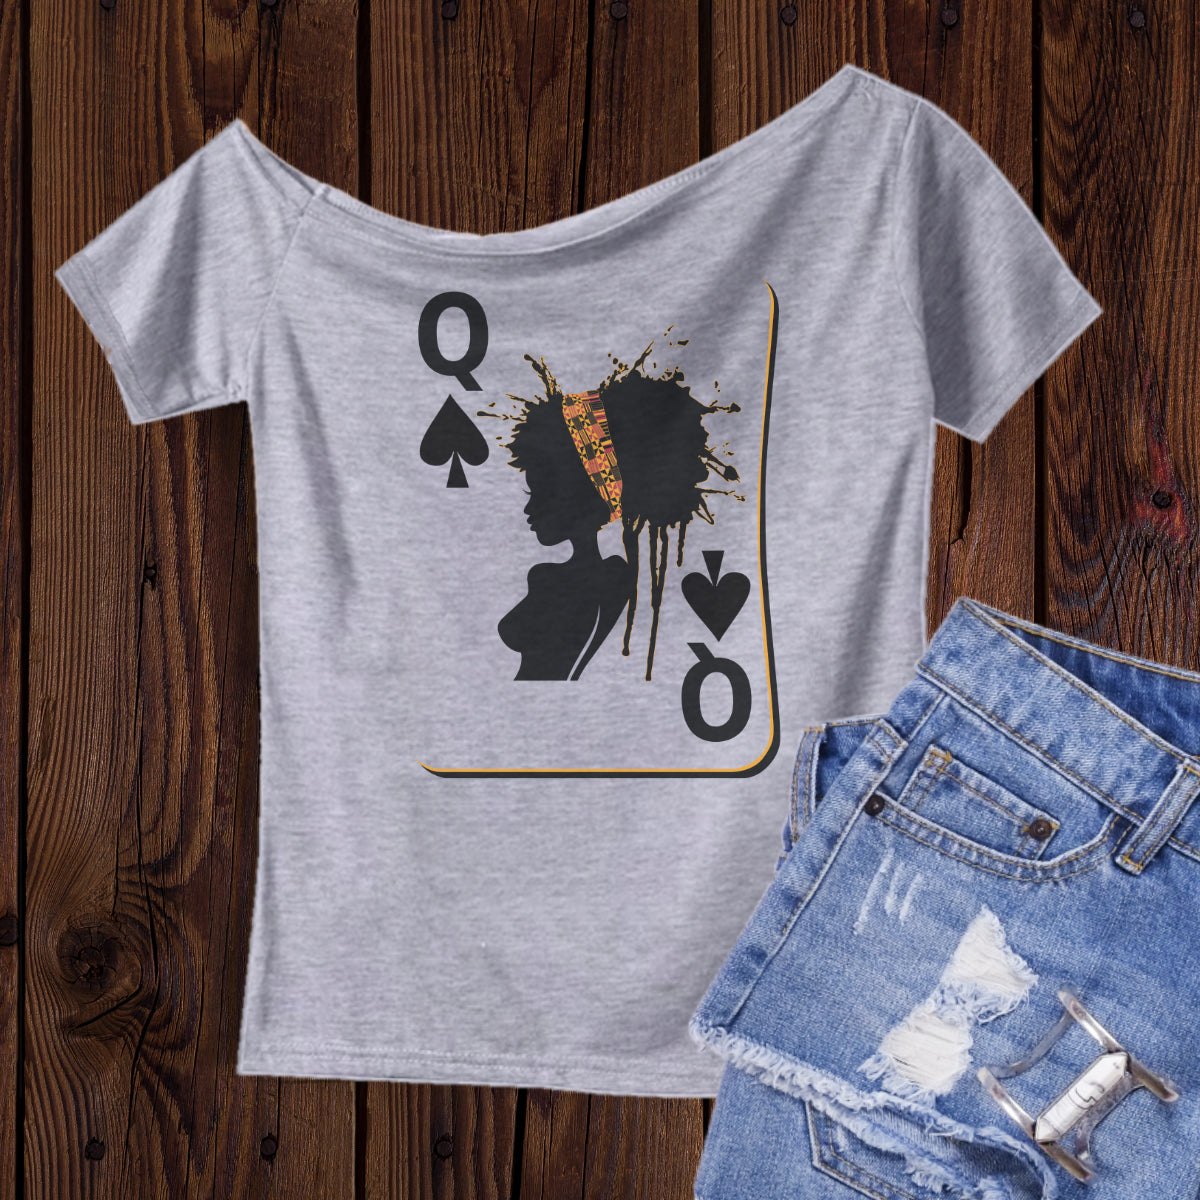 Queen of Spades - Off the shoulder tee Natural Hair Products